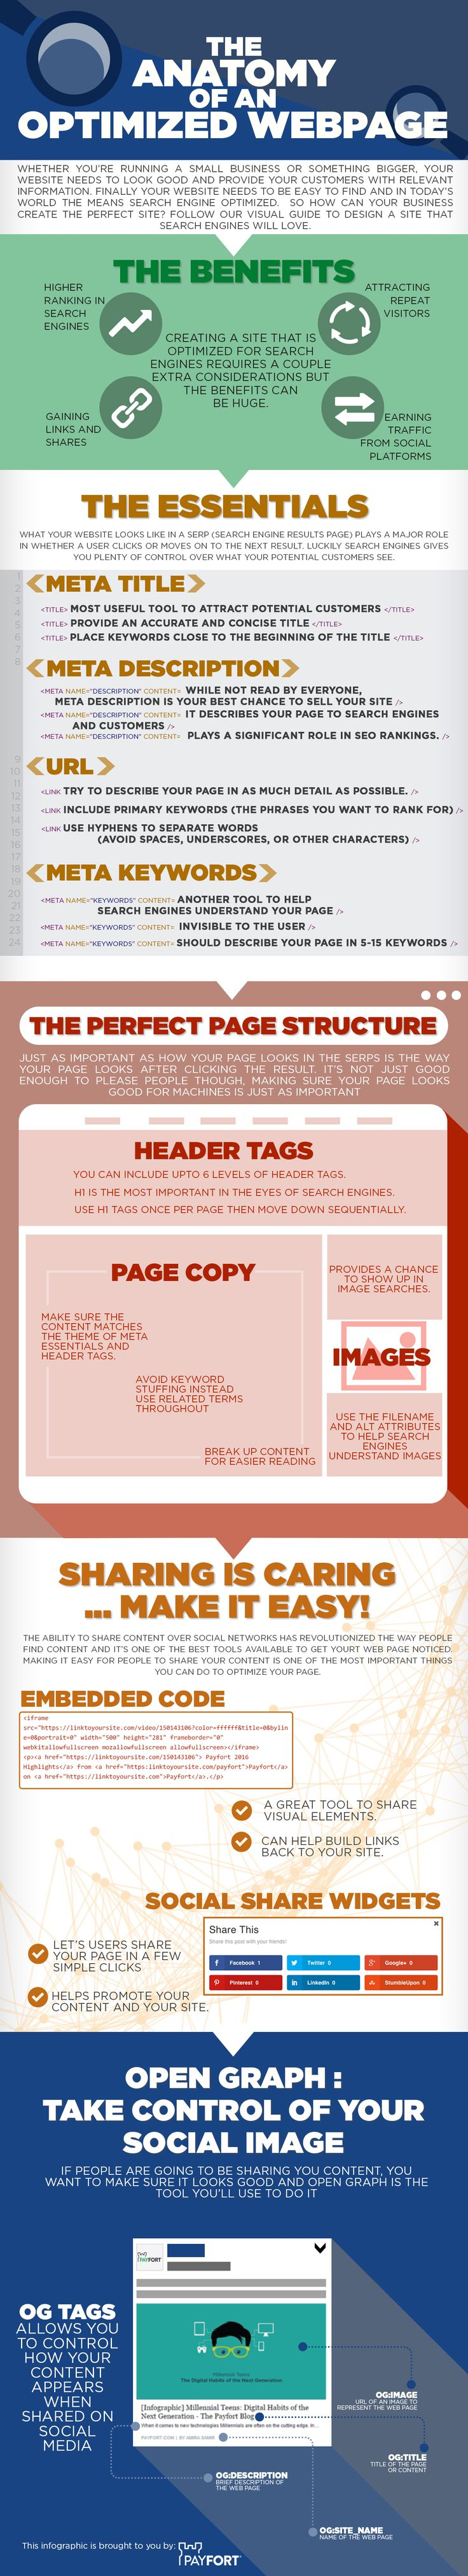 What's a Structured & Optimized Webpage? [Infographic]